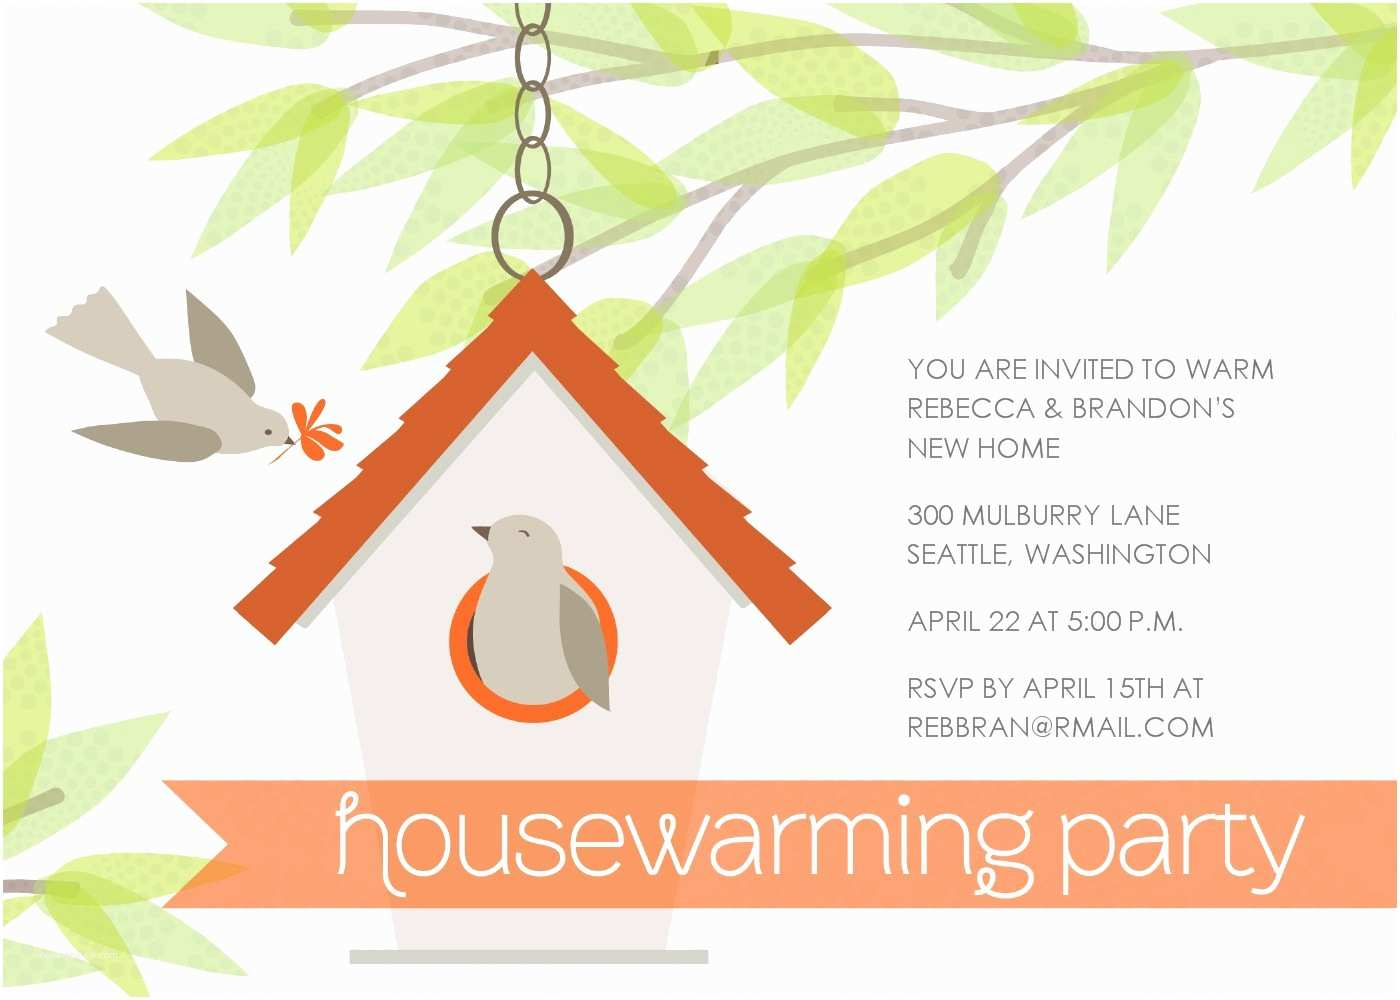 Housewarming Party Invitation Template Housewarming Party Invitation